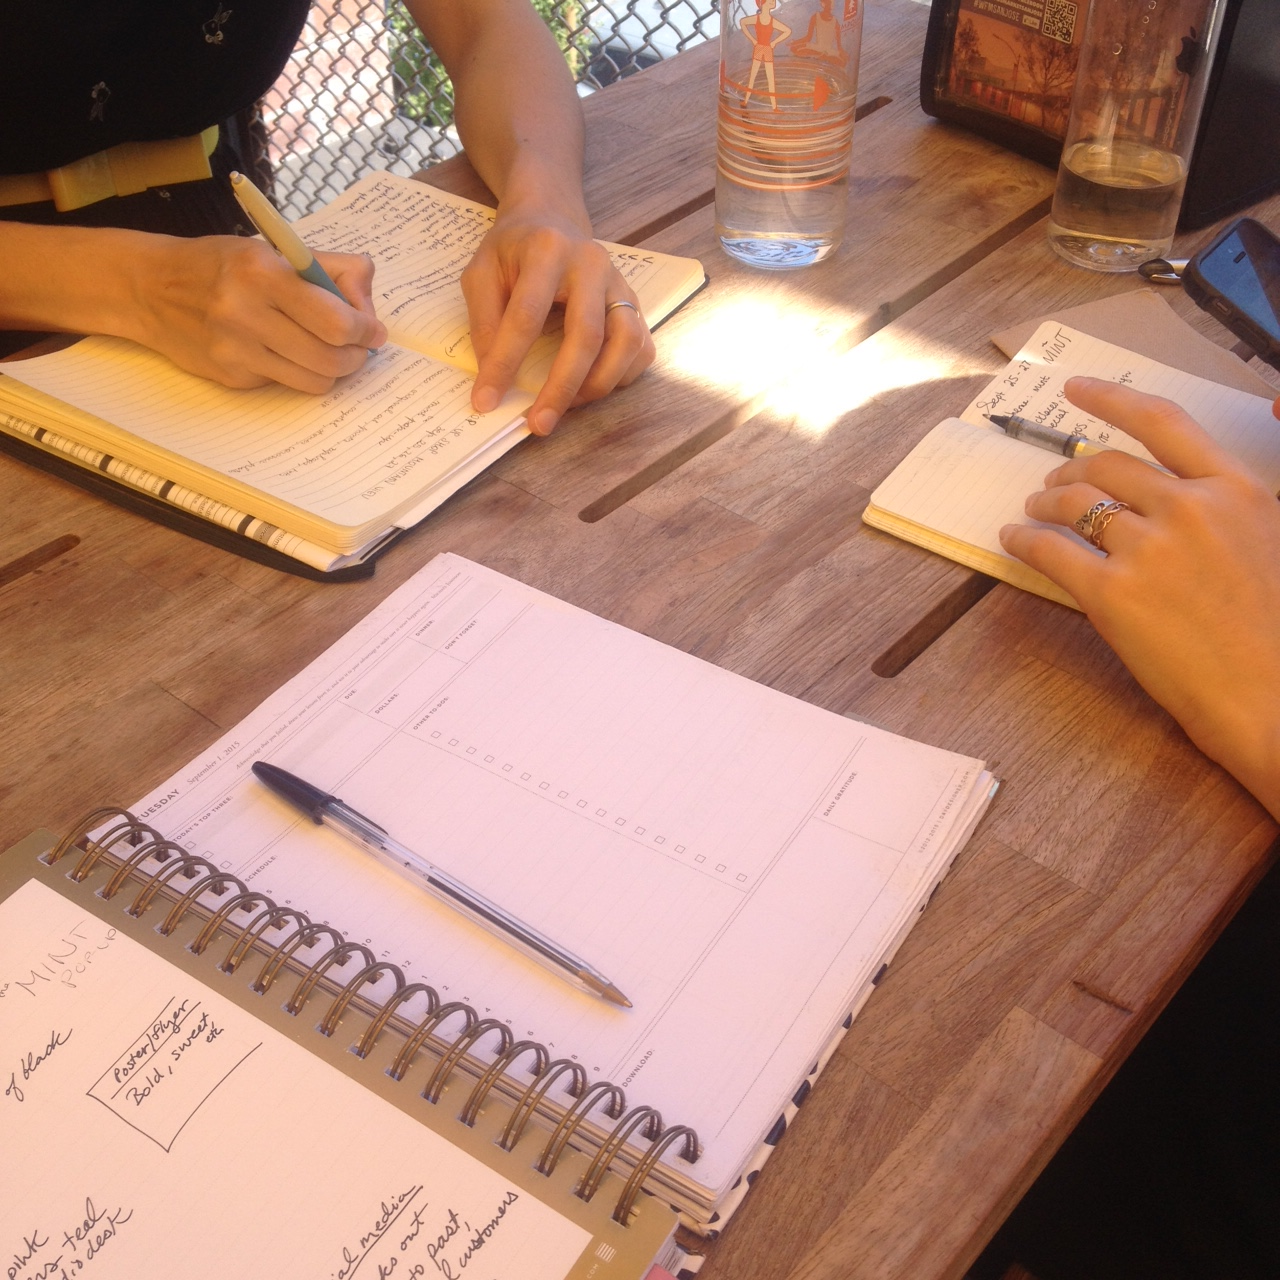 Writing up our plans for the September pop-up